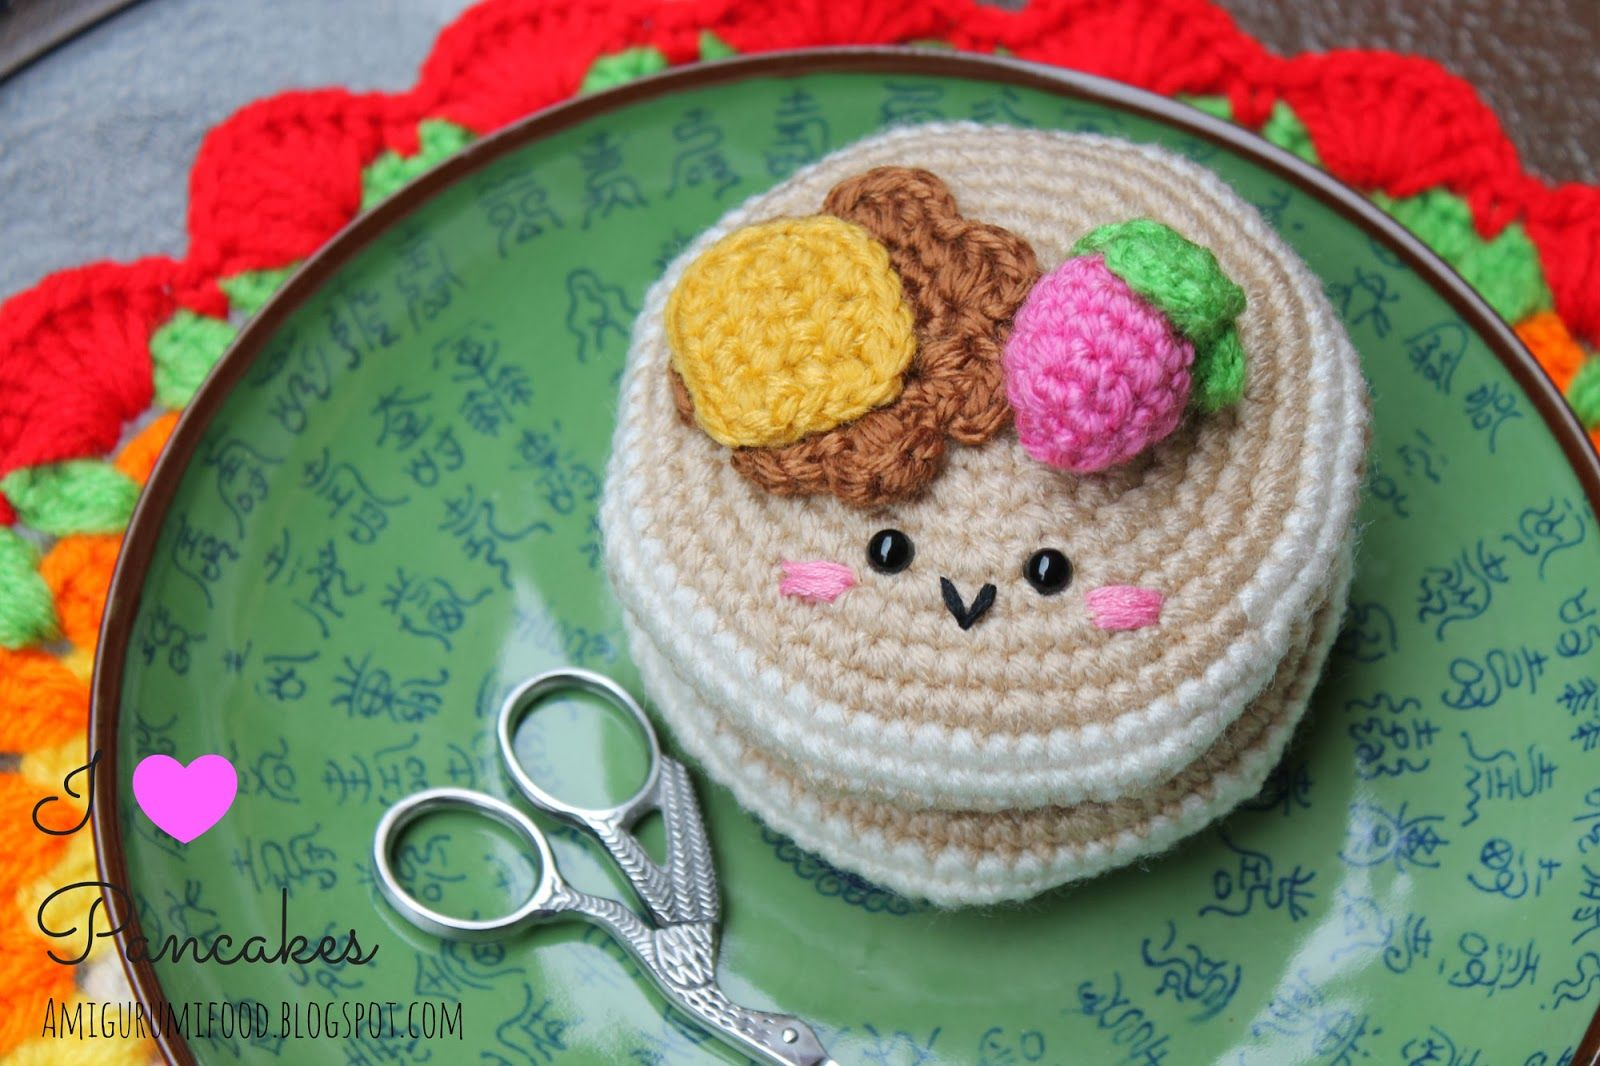 Pancakes Amigurumi Free pattern | Projects to Try | Pinterest ...